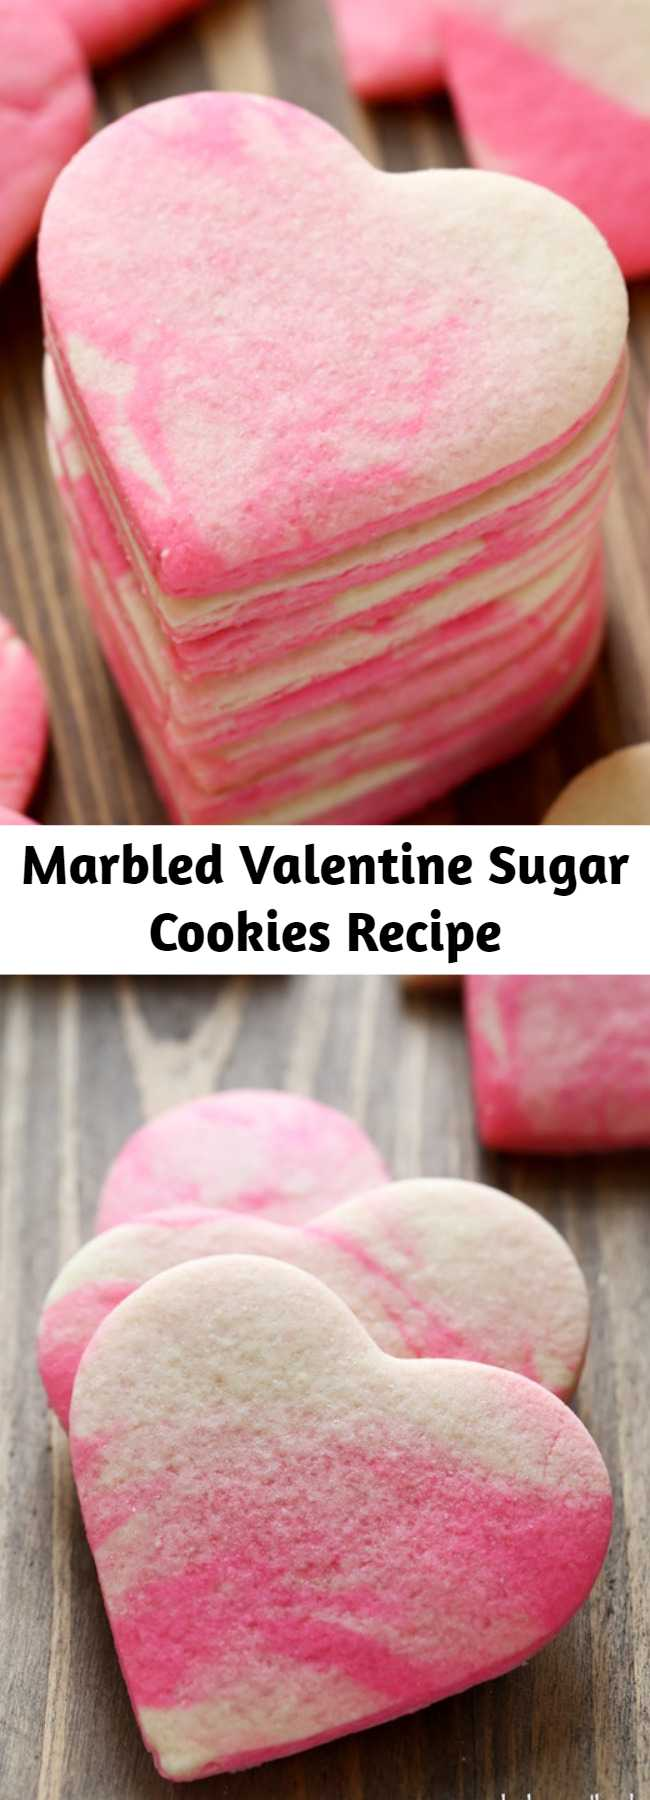 Marbled Valentine Sugar Cookies Recipe - Classic homemade sugar cookies with a fun marbled twist for Valentine's Day. A festive treat for the entire family!